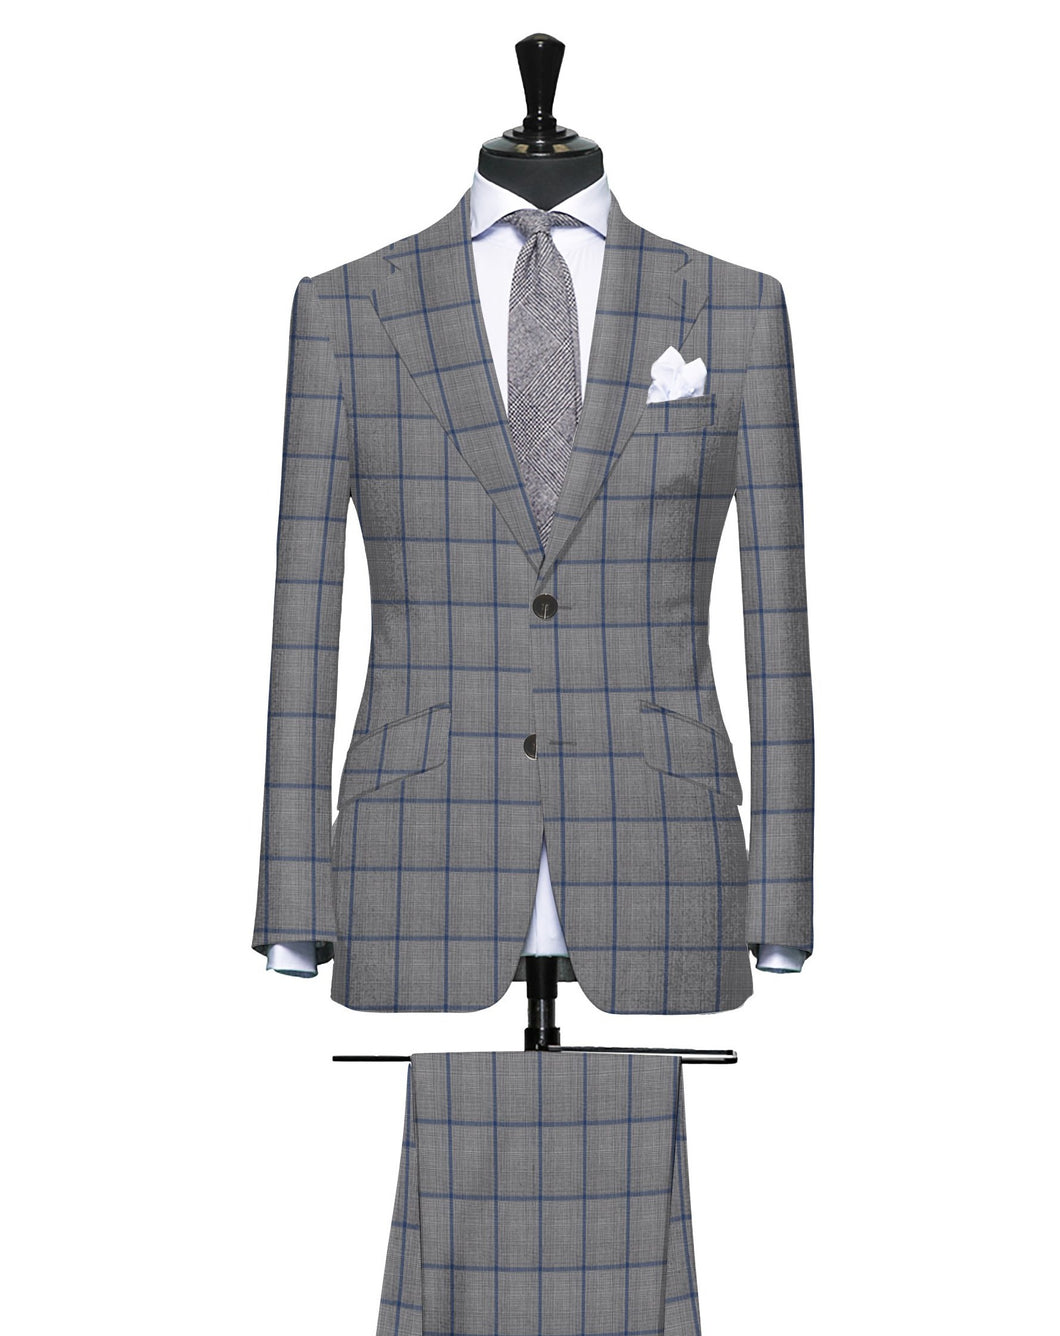 Grey Plaid with Blue Windowpane, Super 150, Wool